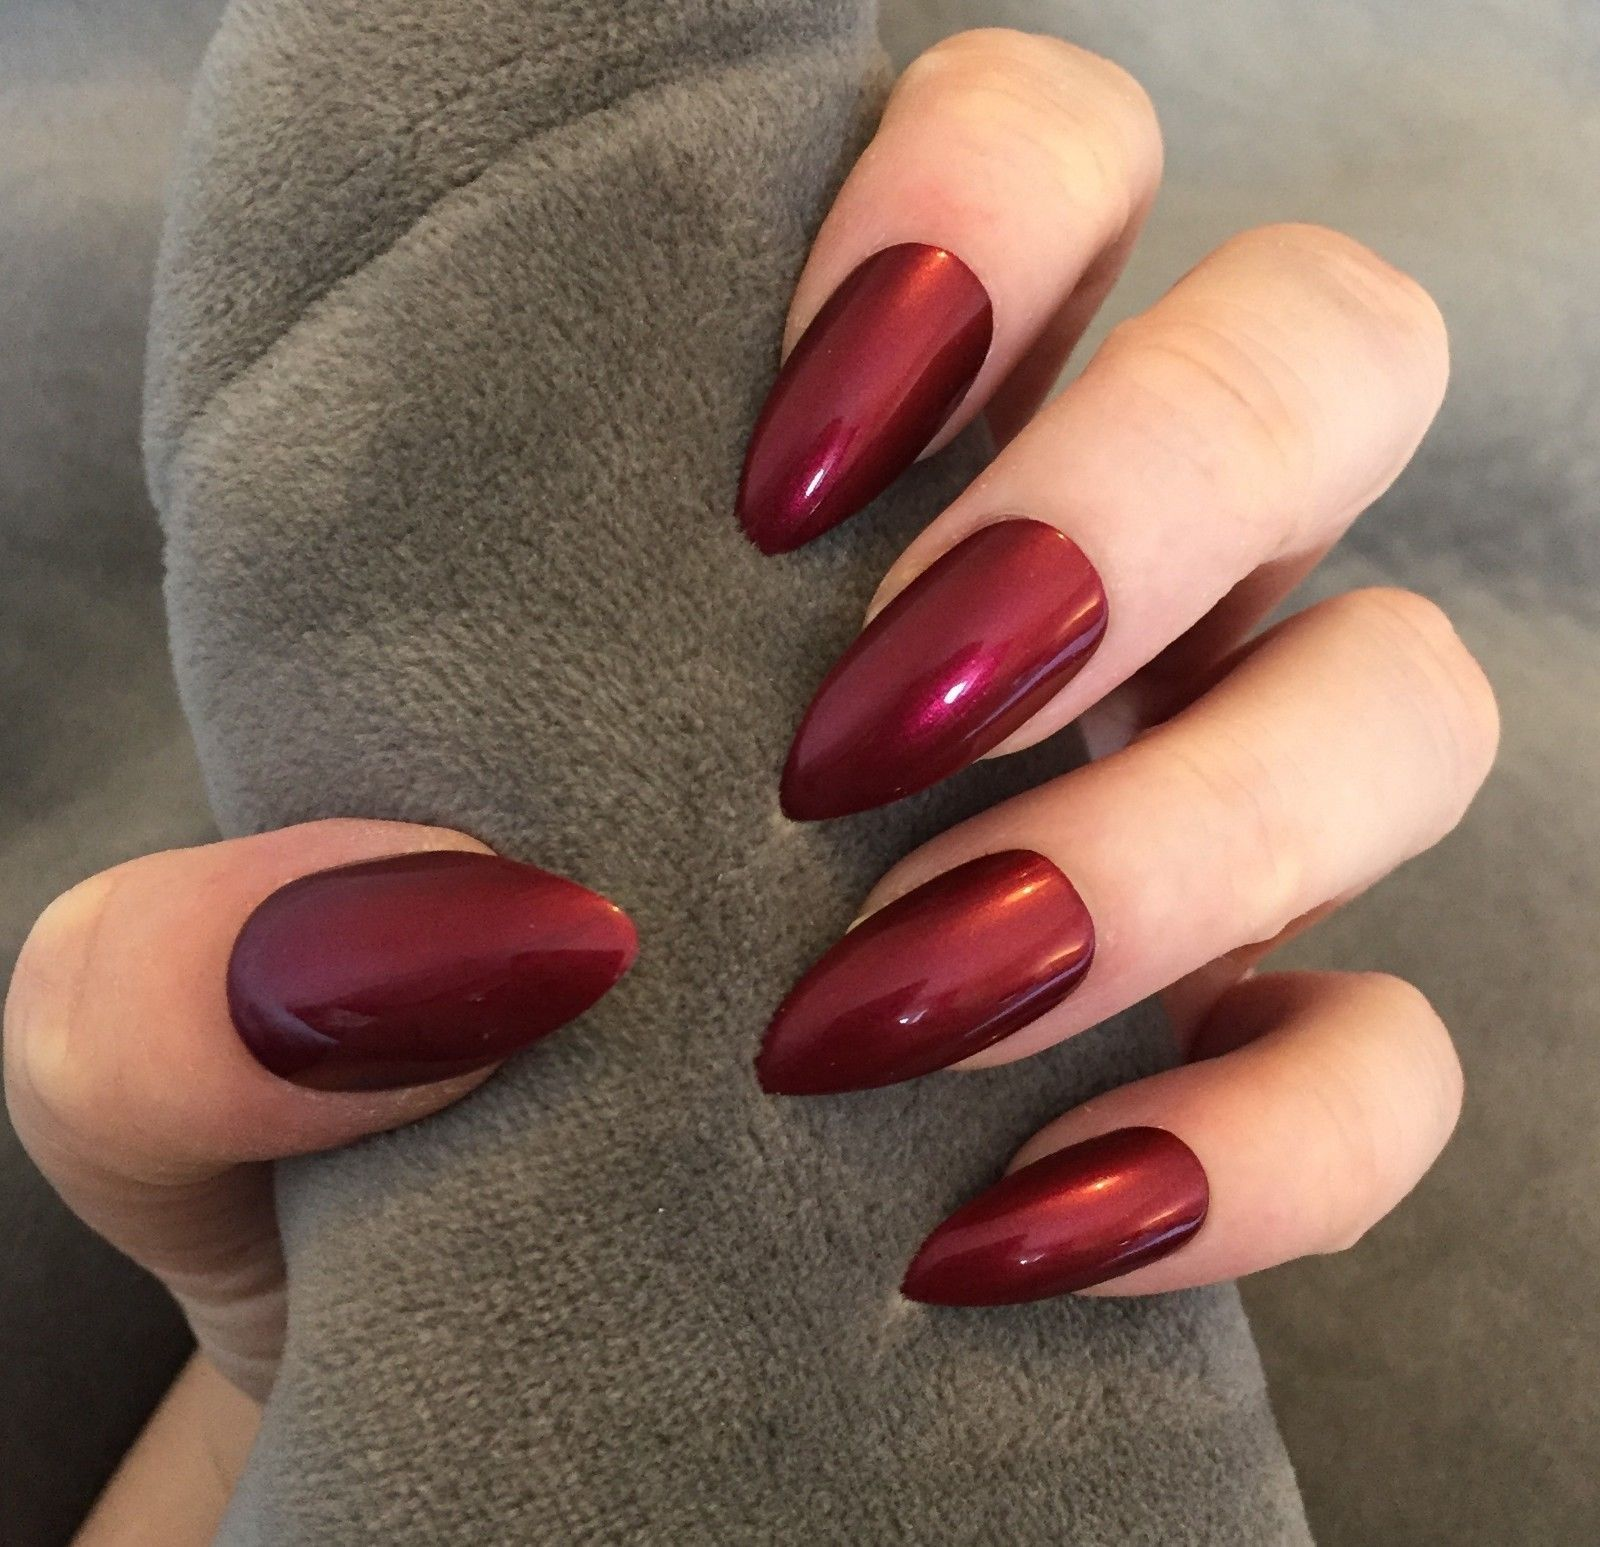 Awesome 35 Chic Winter Red Acrylic Nail Designs Ideas Http Glamisse Com Index Php 2018 11 05 35 Chic W Metallic Nails Metallic Nail Art Metallic Nails Design